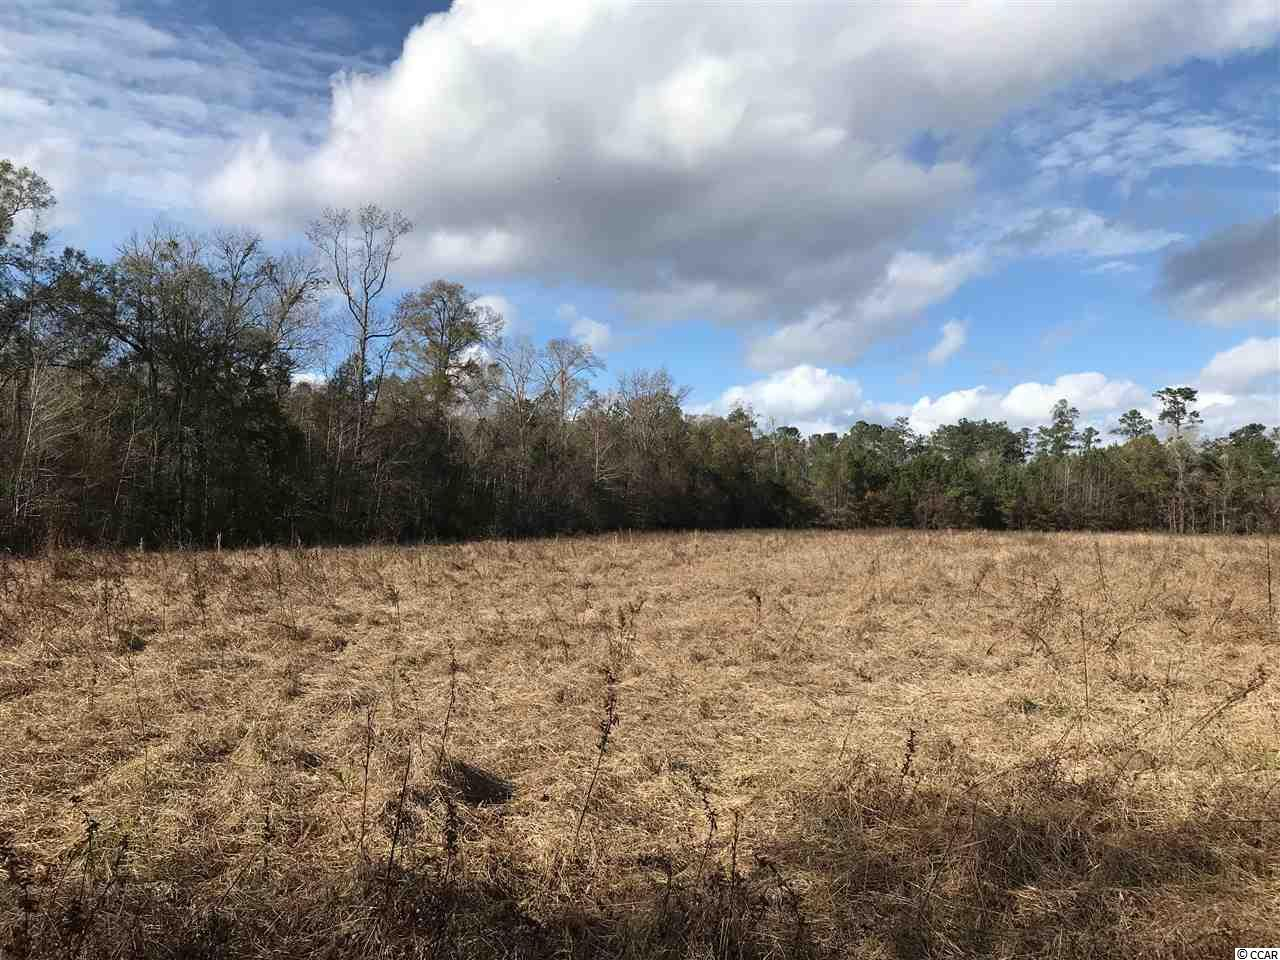 BEAUTIFUL 14.56 ACRES WITH ROAD FRONTAGE ON HWY 66 AND HWY 545- FRONT PART OF PROPERTY IS WOODED AND APPROXIMATELY 9 ACRE FIELD ON BACKSIDE- PUBLIC WATER AVAILABLE- EASY ACCESS TO HWY 22 AND NORTH END OF MYRTLE BEACH.